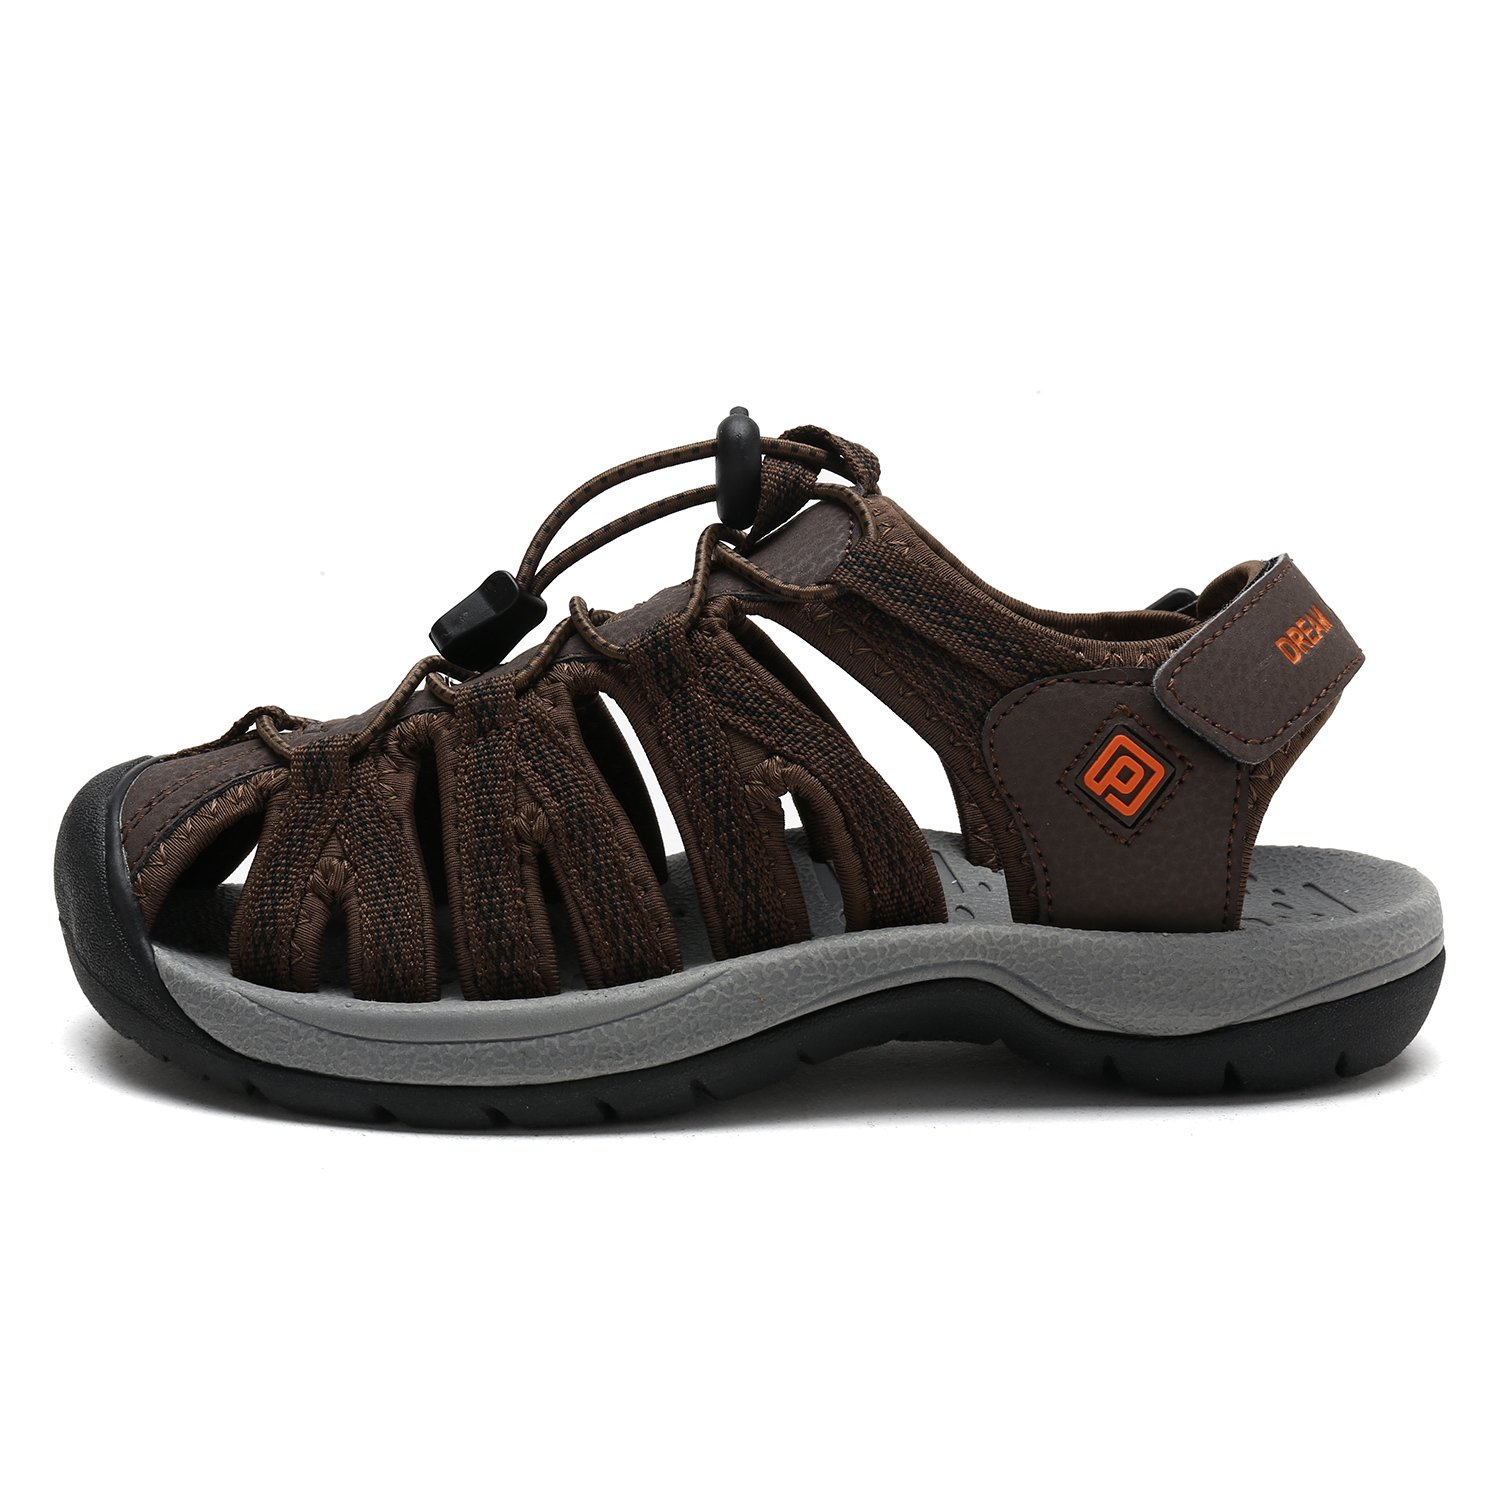 DREAM 7 PAIRS Women's 160912-W Adventurous Summer Outdoor Sandals B077GBRYYK 7 DREAM B(M) US|Brown Blk Orange da4231